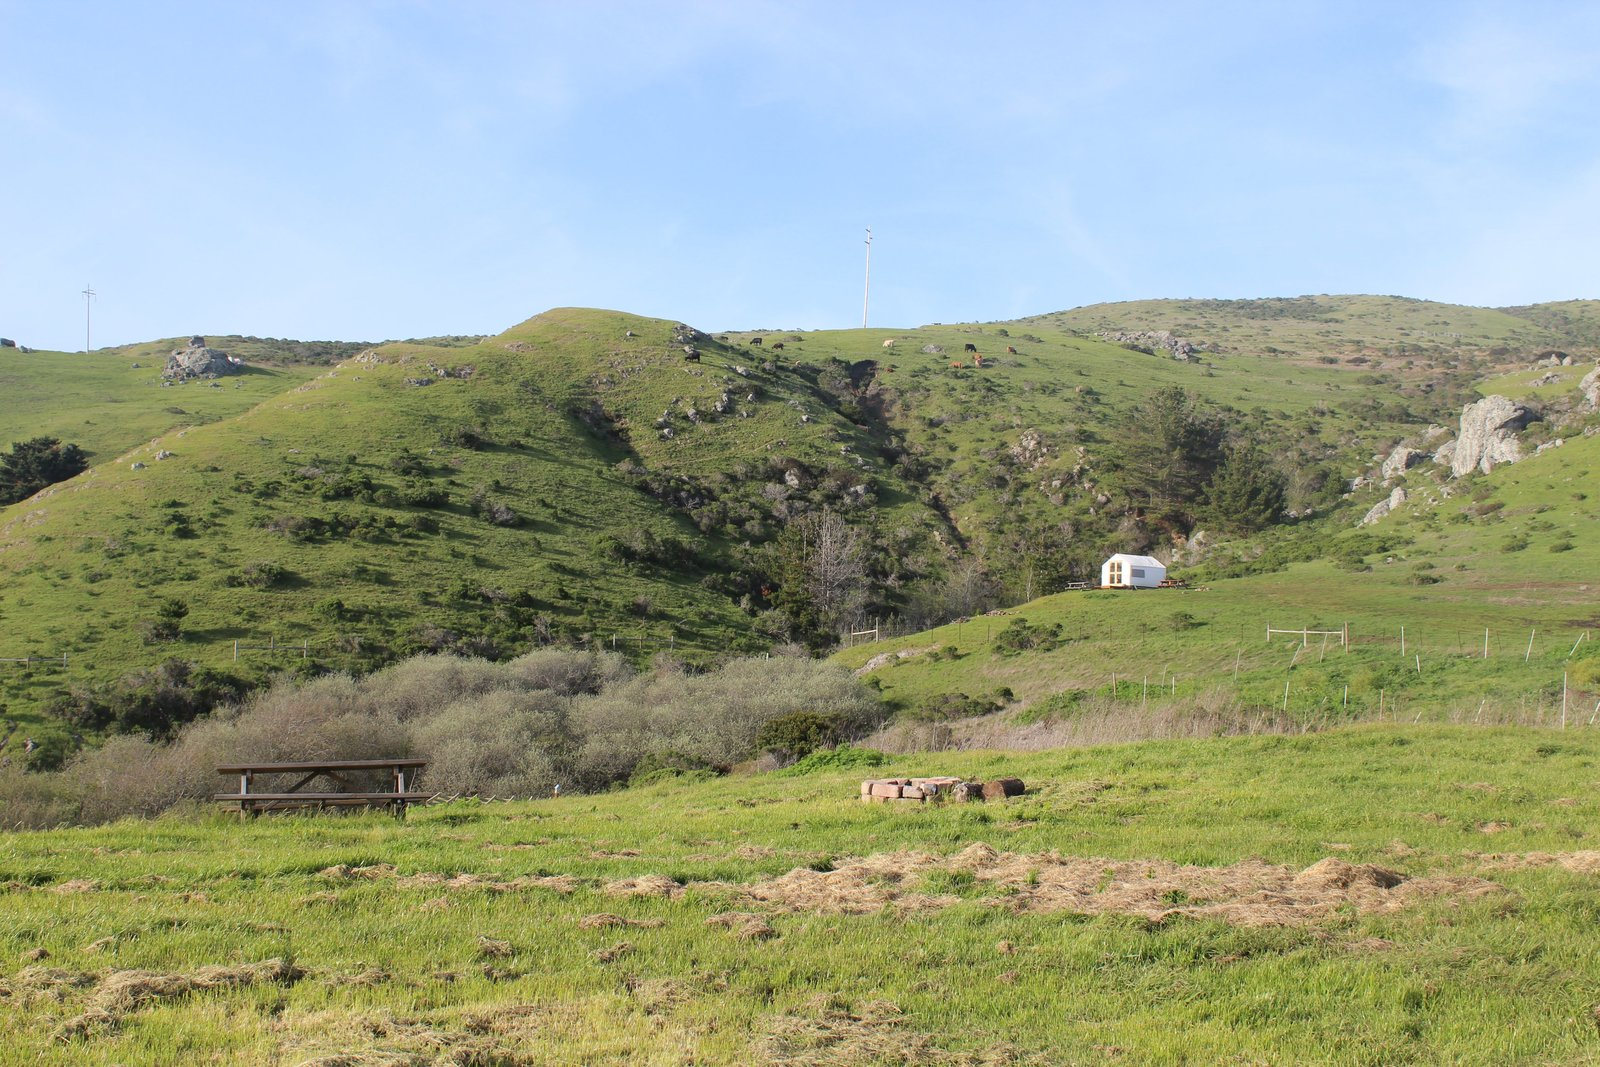 Outdoor, Shrubs, Trees, Grass, and Slope Chanslor Ranch offers drive-in and walk-in campsites, glamping tents, and tipis.  Photo 4 of 17 in Bodega Bay or Bust: Taking the Airstream Globetrotter to Northern California's Coastal Gem